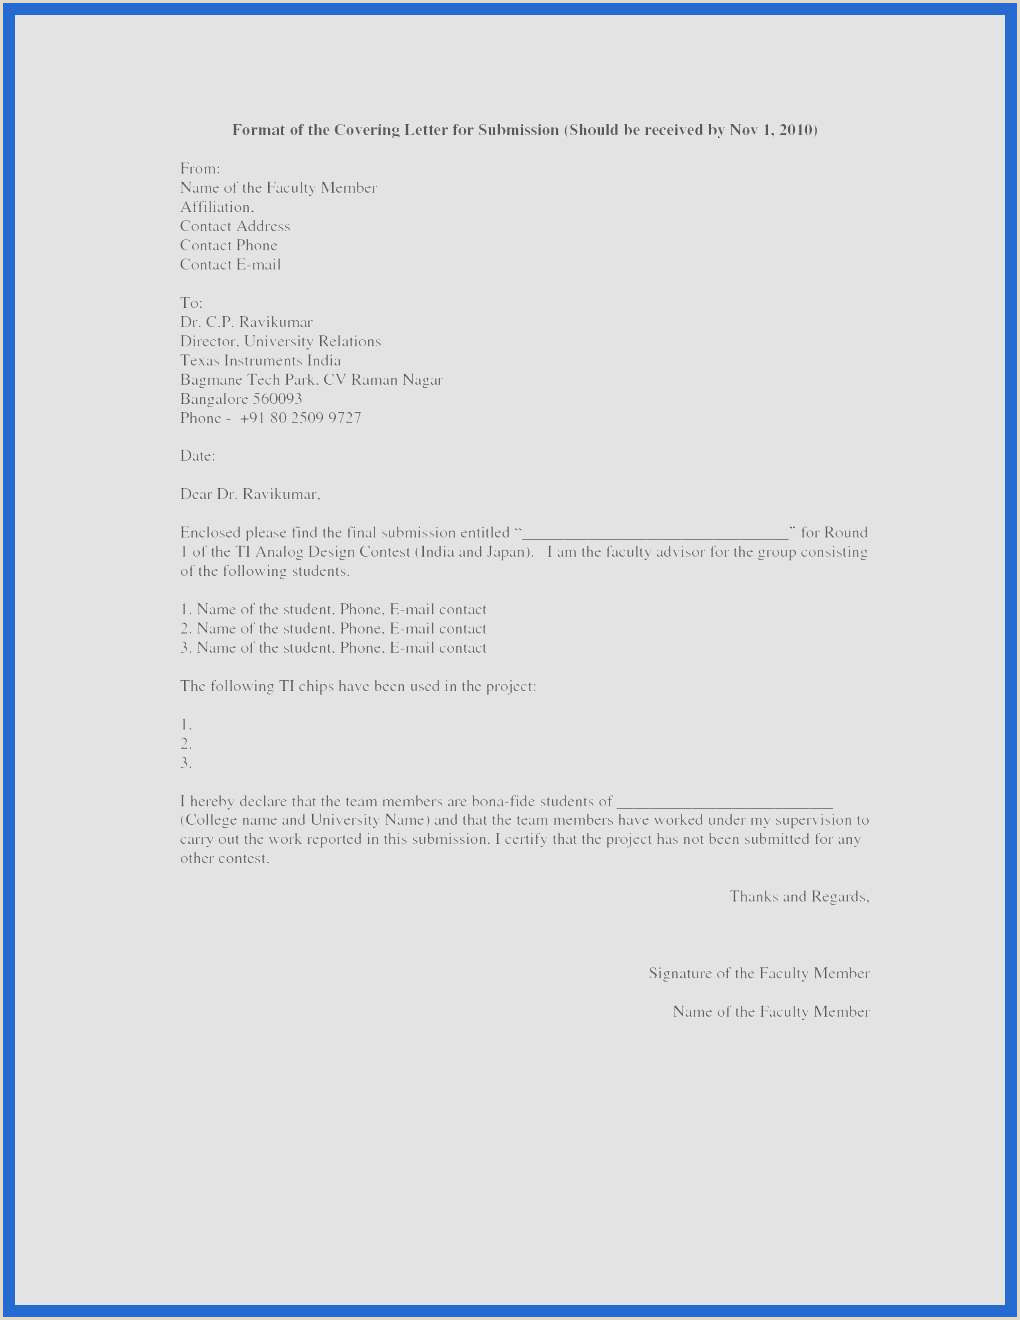 Salesperson Cover Letter Examples Lovely Writing A Cover Letter Examples — Kenbachor Kenbachor